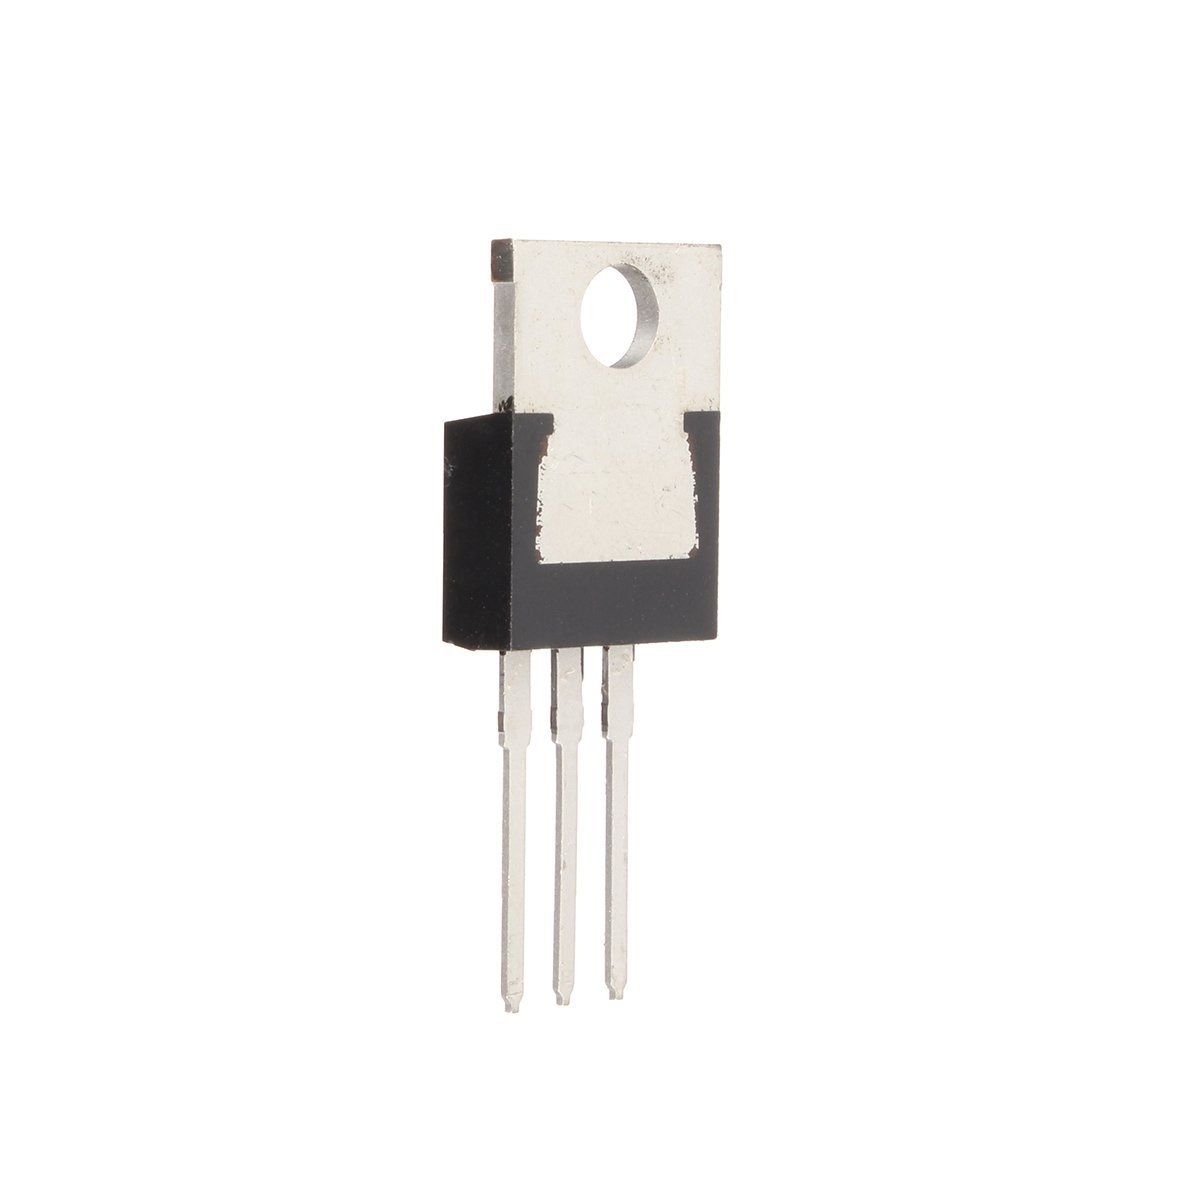 IRF840 N-channel 8A 500V Power MOSFET - ICs - Integrated Circuits & Chips - Core Electronics